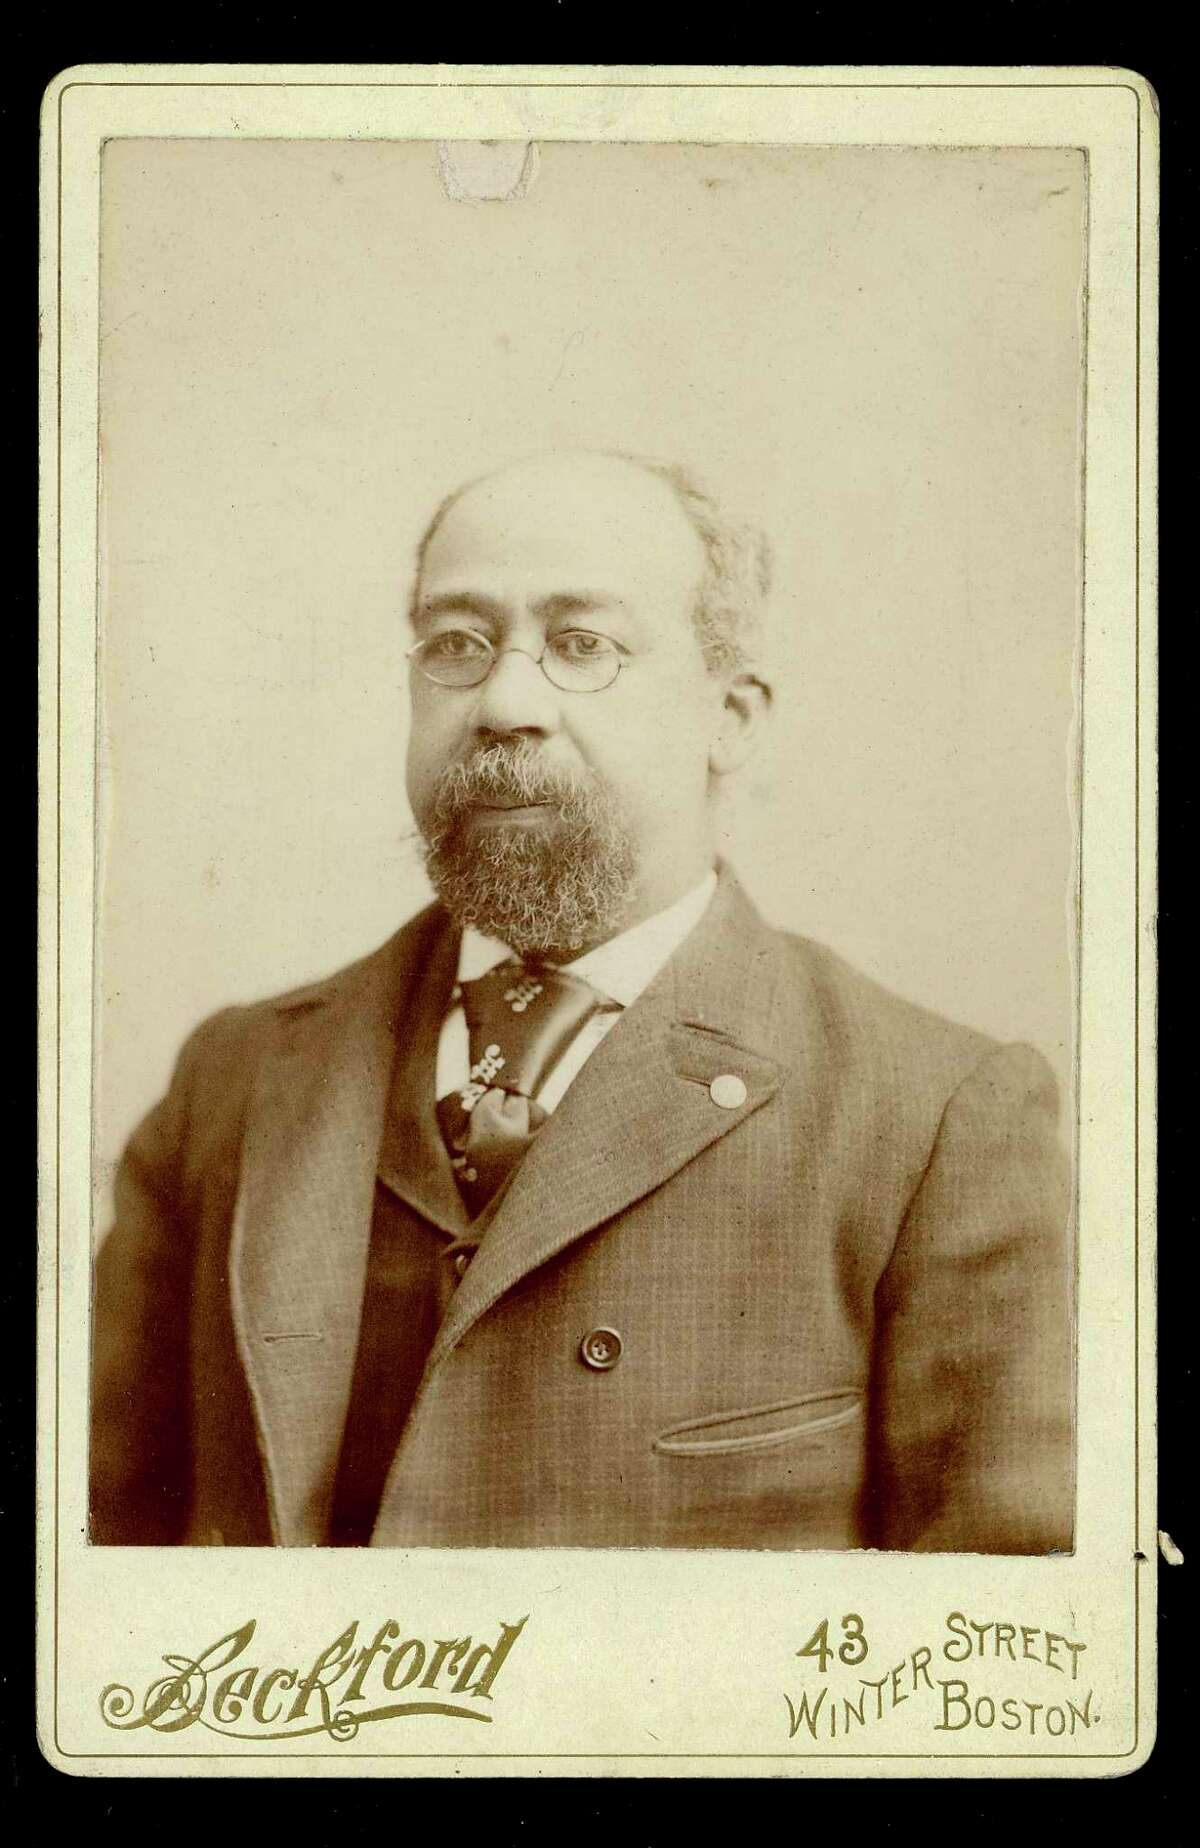 William B. Gould in the late 1870s or early 1880s.